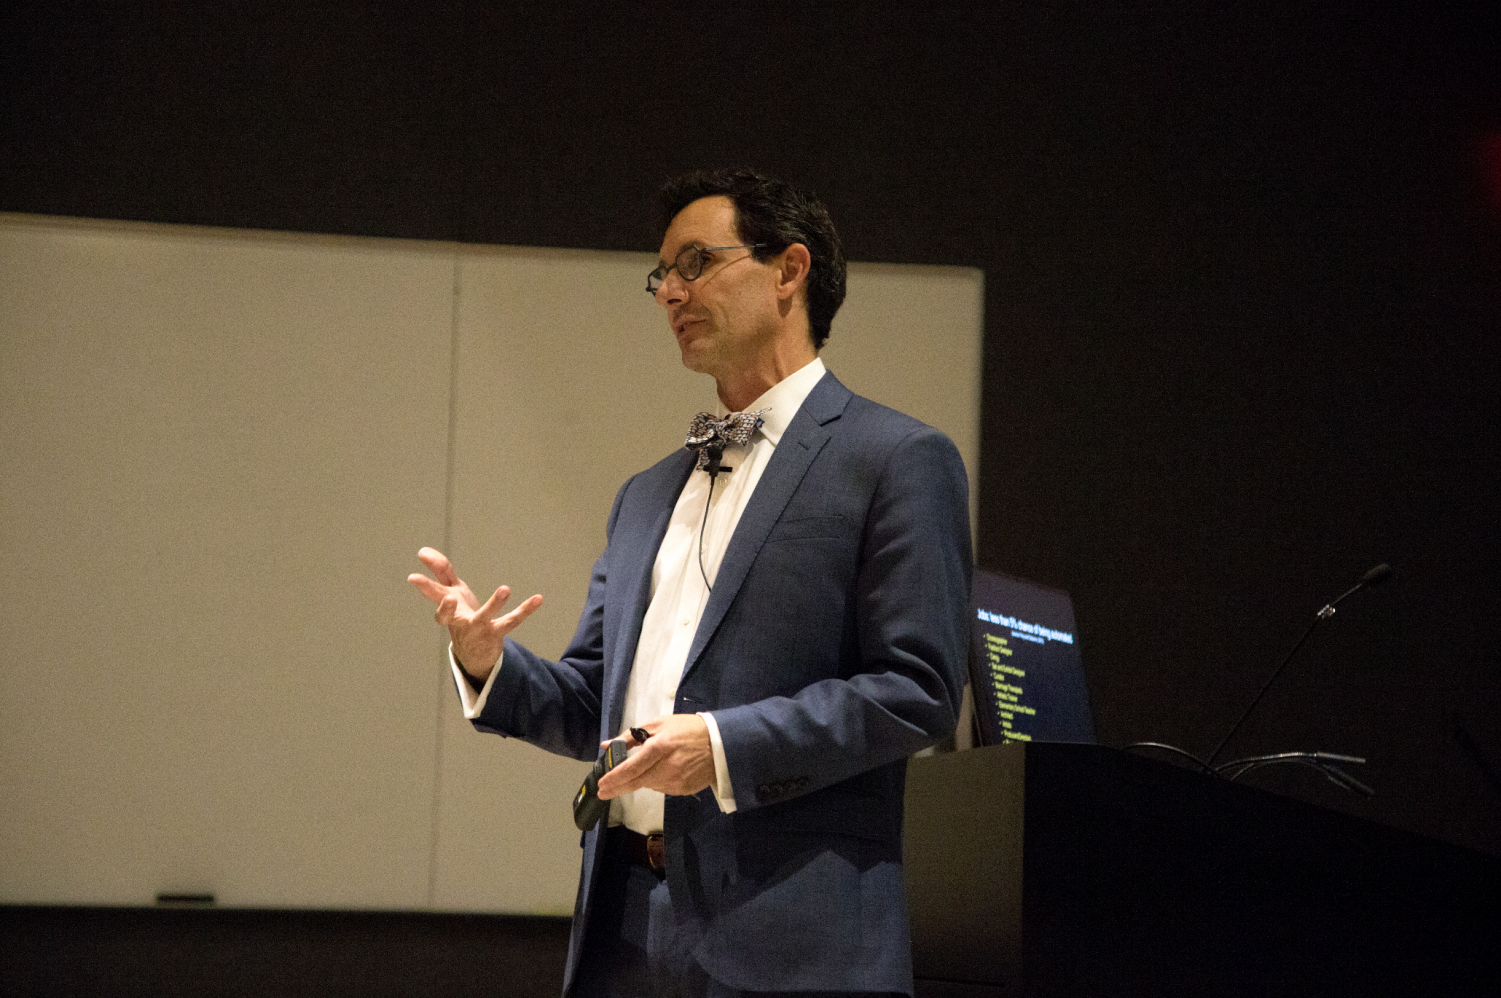 Dean of the Herberger Institute for Design and the Arts at Arizona State University, Steven Tepper is seen on Tuesday, April 10th 2019. Steven Trepper gives a lecture on creativity, culture, and social change in the West Art Building.